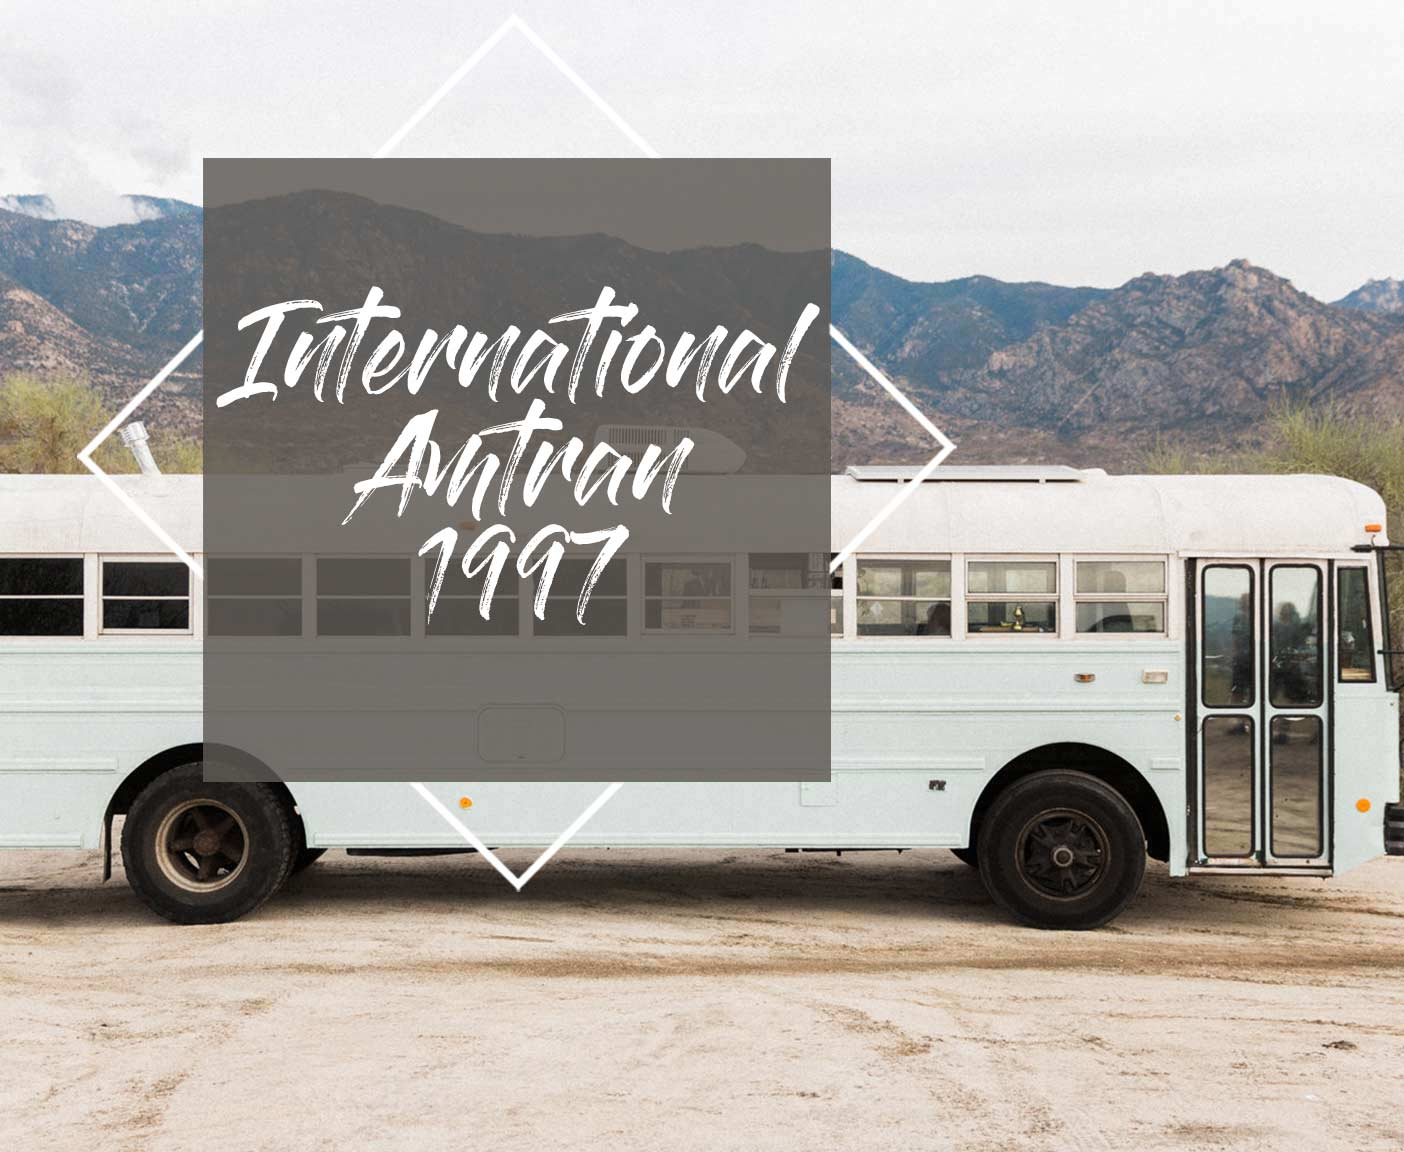 contented-nomads-international-amtran-school-bus-for-sale-genesis